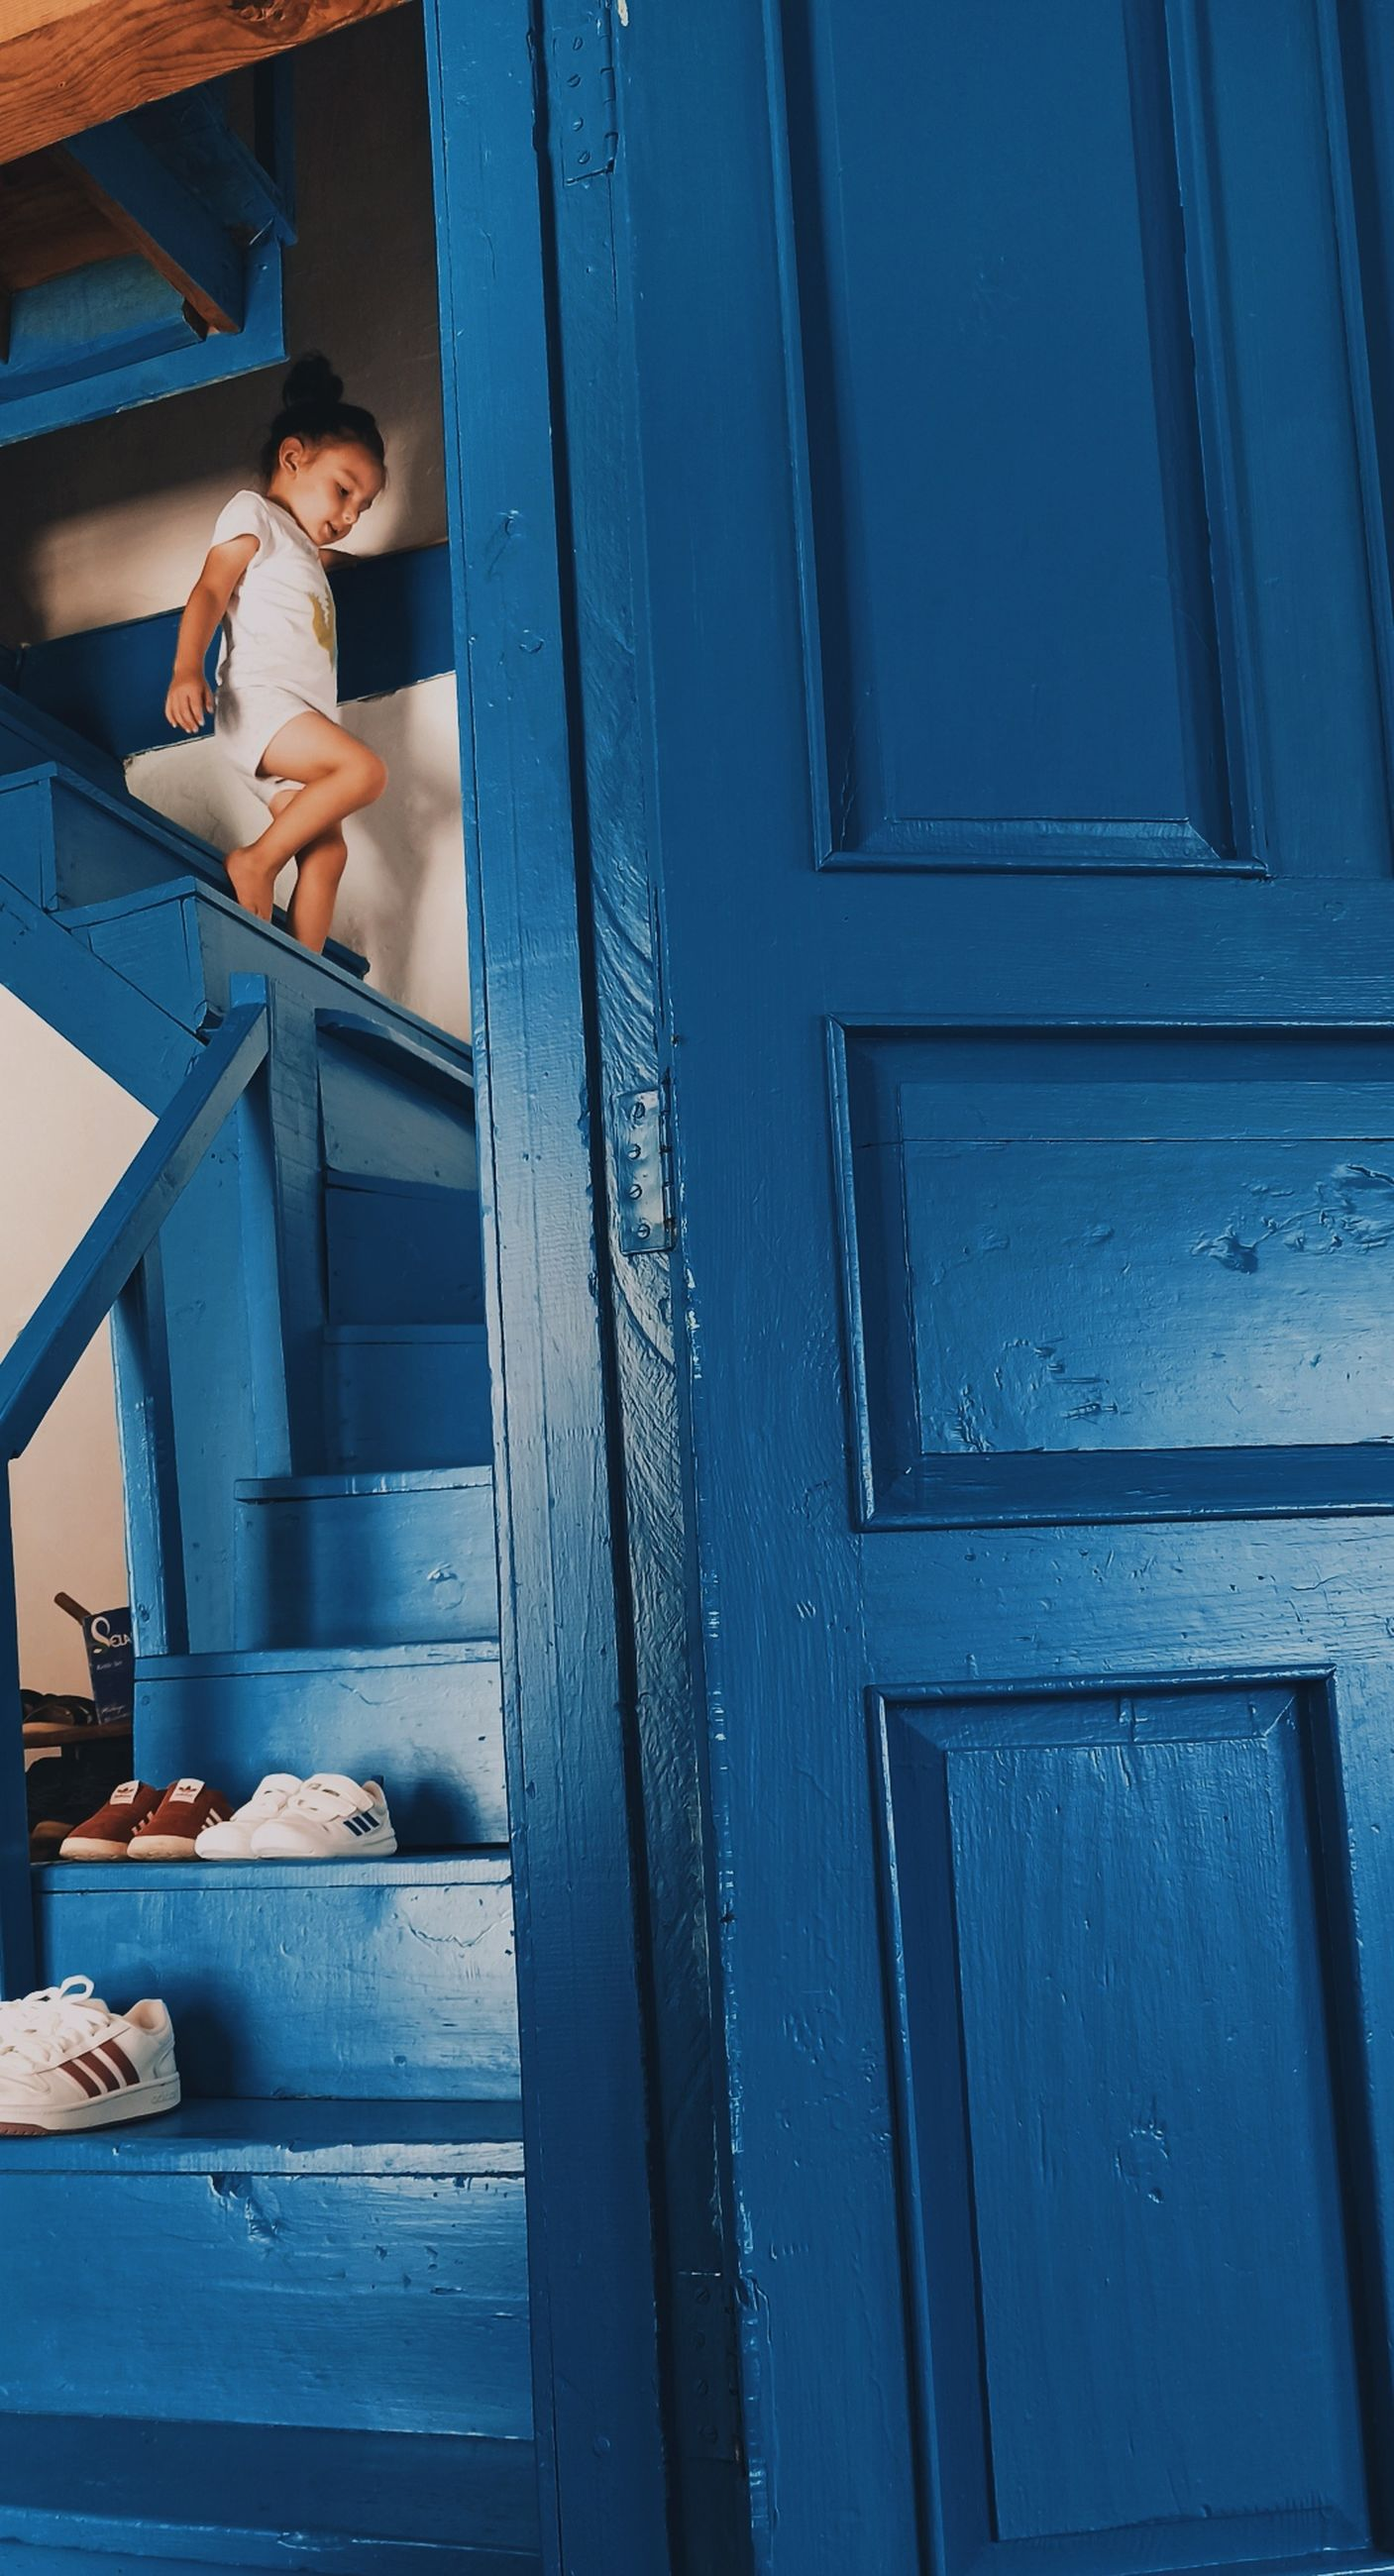 blue, door, entrance, adult, one person, architecture, young adult, wood, women, window, doorway, interior design, lifestyles, wall, room, full length, food and drink, relaxation, men, female, leisure activity, outdoors, day, built structure, standing, house, building exterior, person, emotion, looking, sitting, staircase, casual clothing